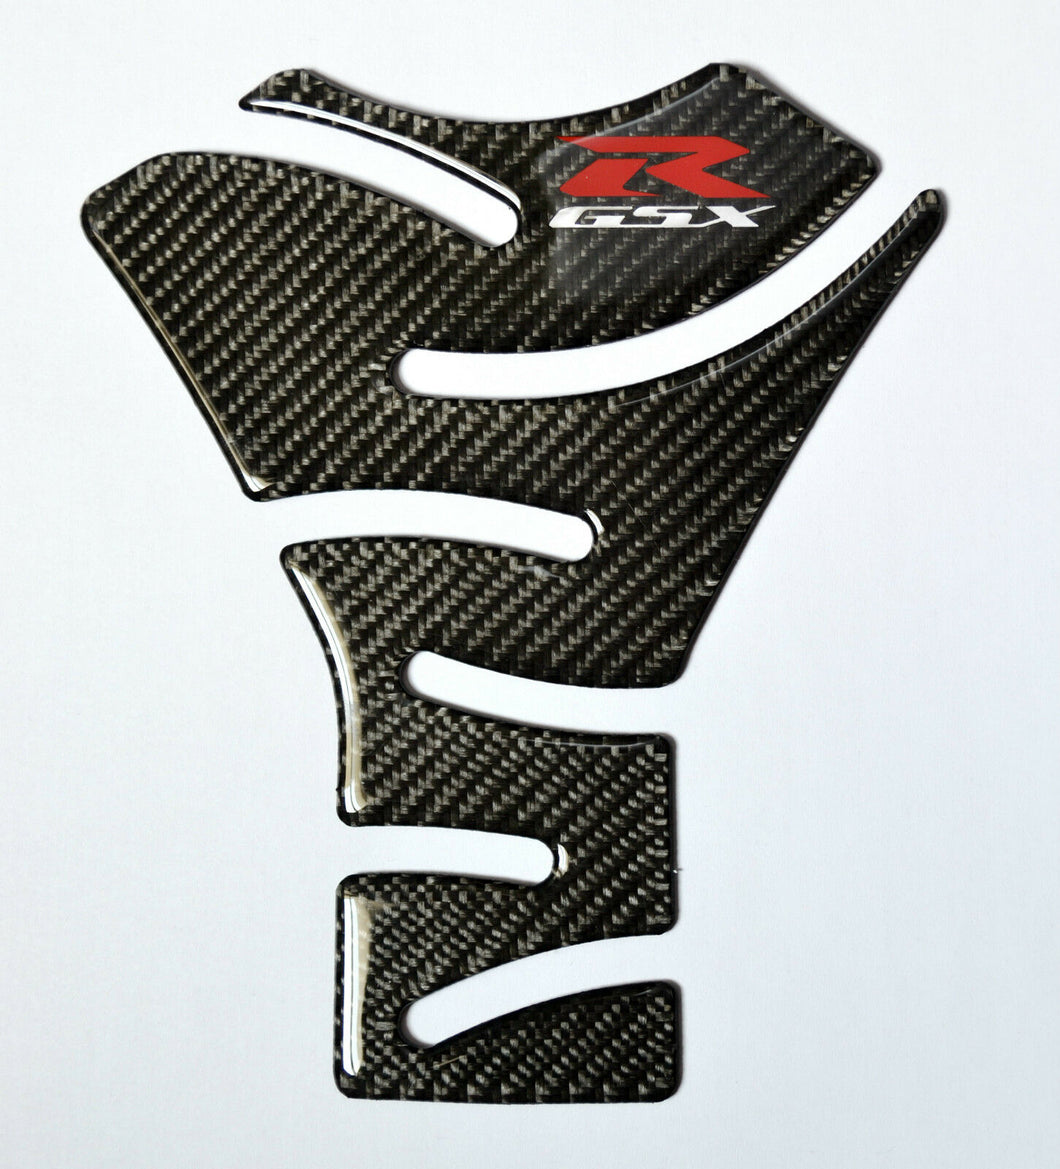 Real Carbon Fiber Tank Protector Pad Sticker trim fits for Suzuki GSX-R